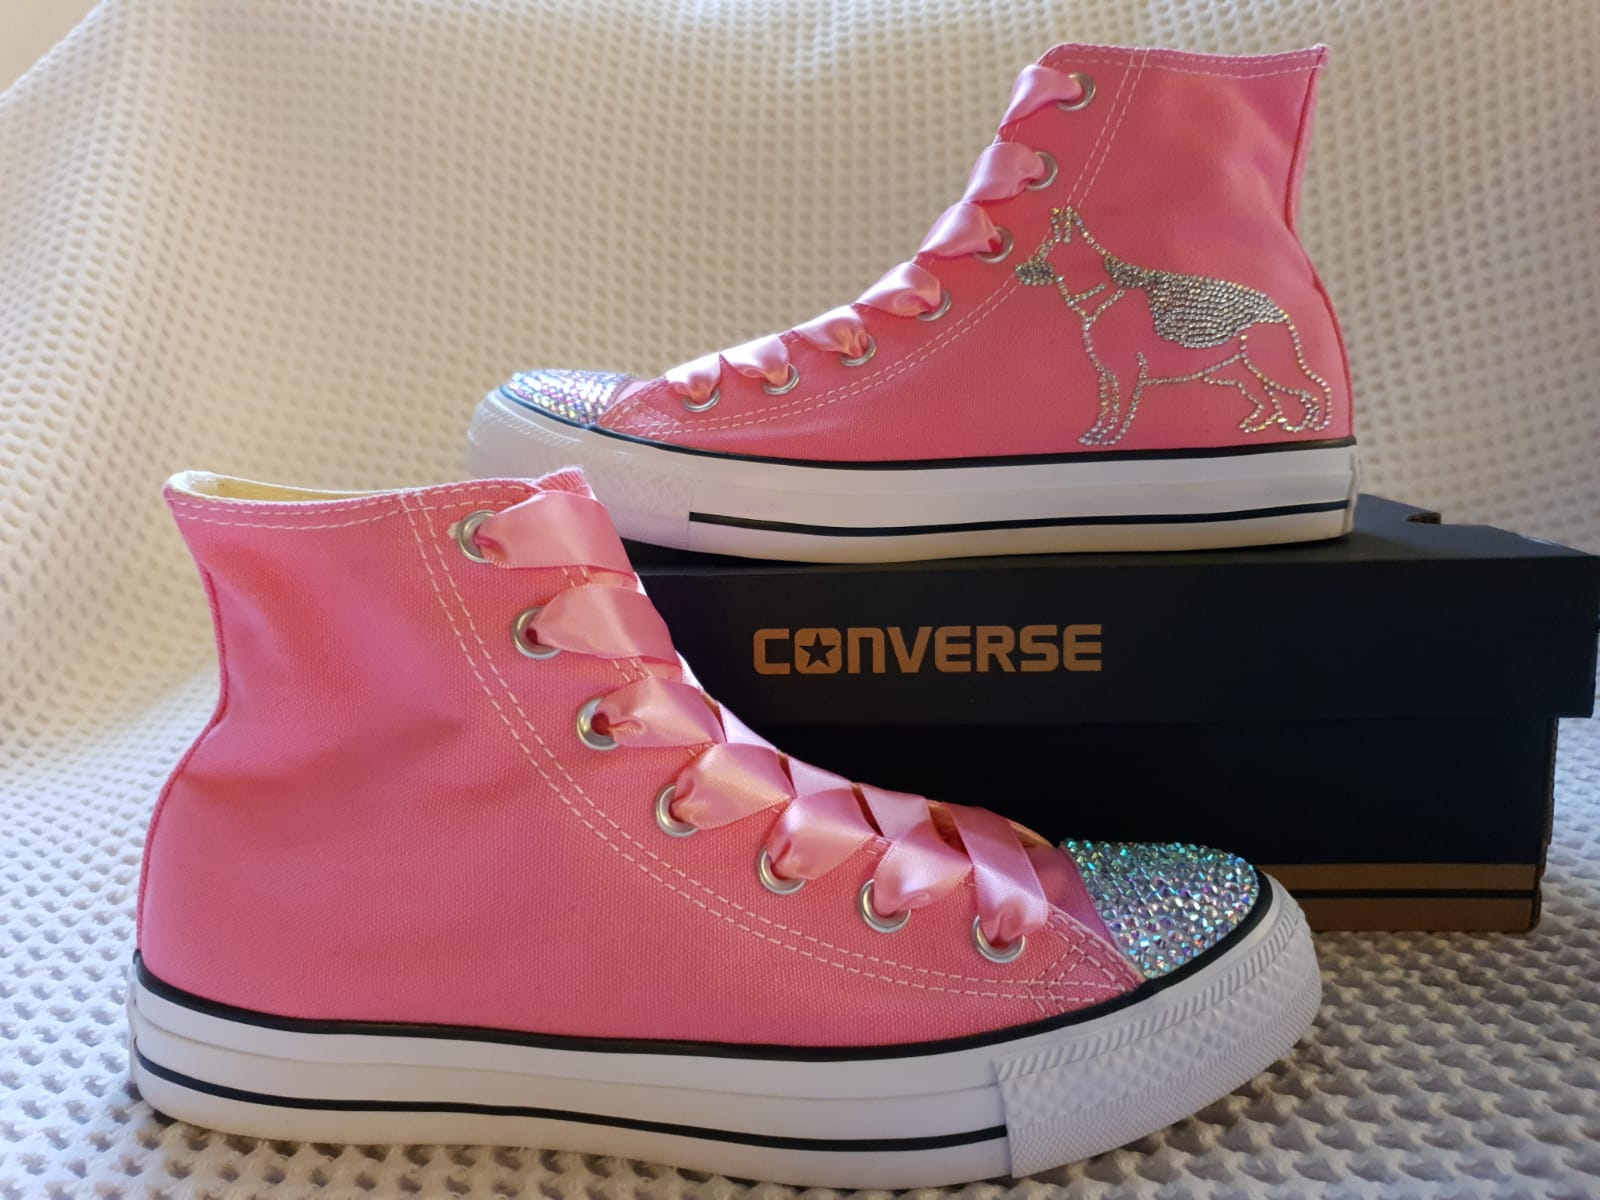 Converse Alsatian High Top